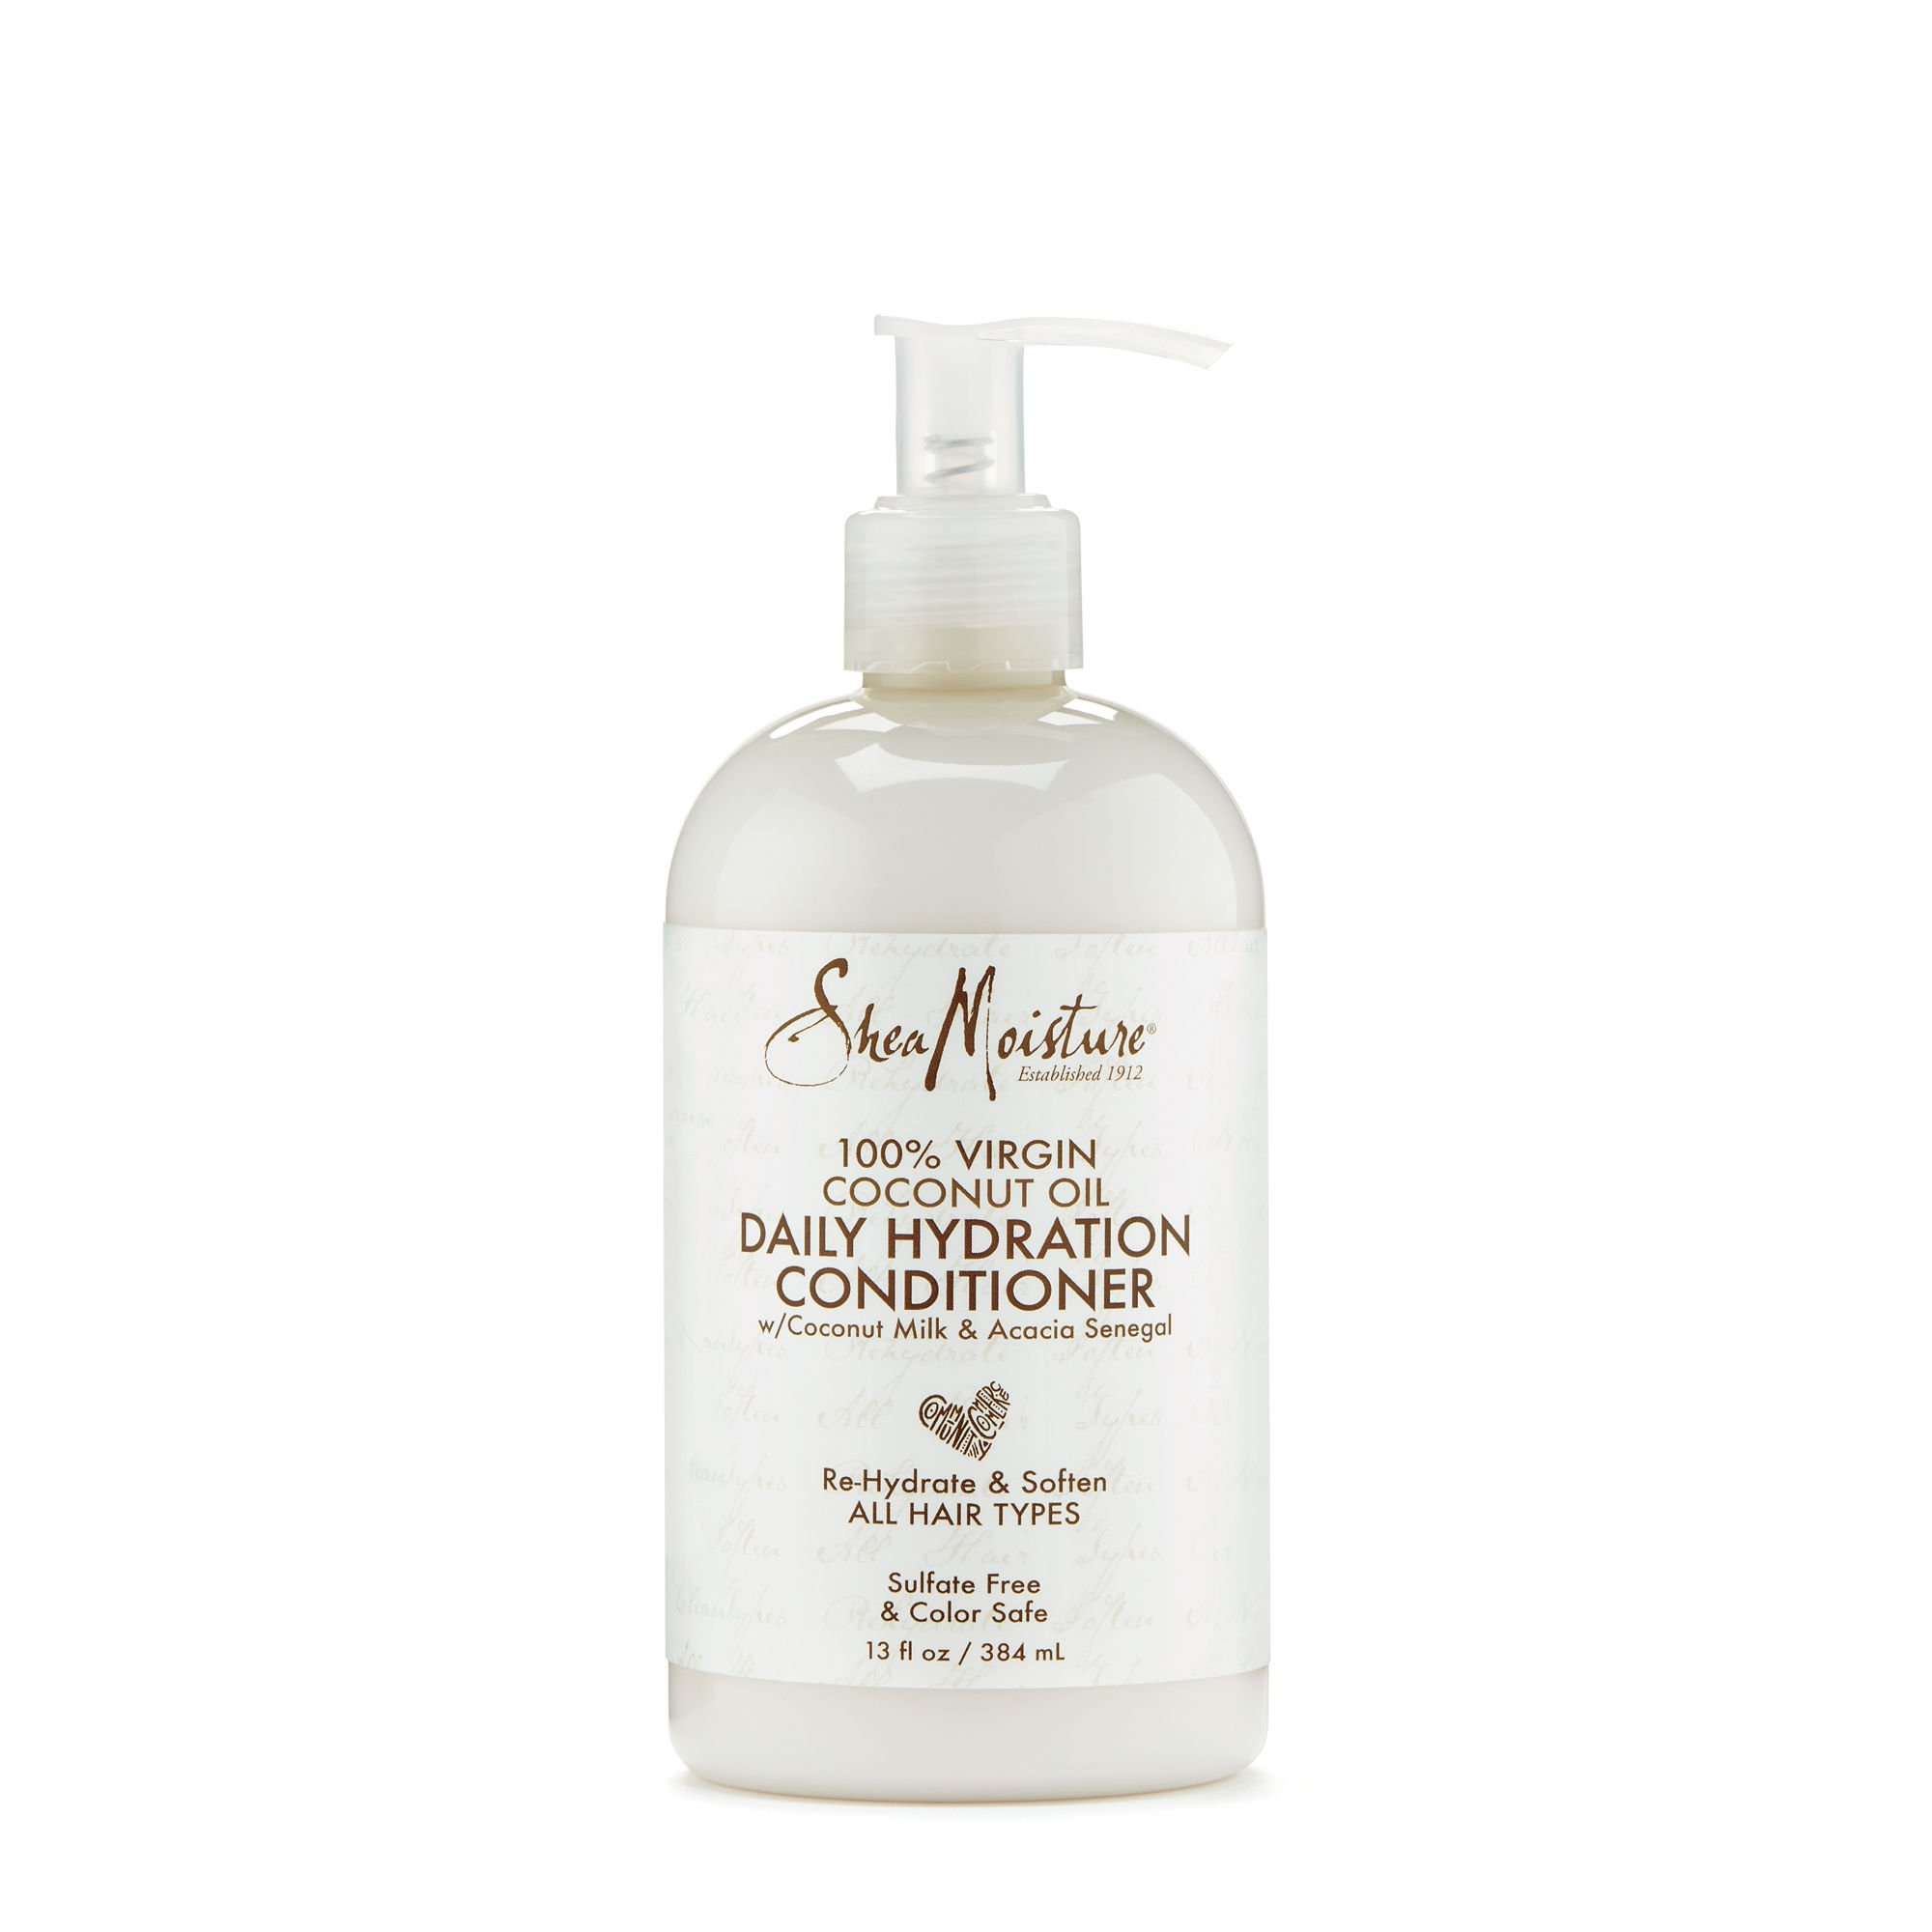 SheaMoisture 100% Virgin Coconut Oil Daily Hydration Conditioner, 13 Ounce